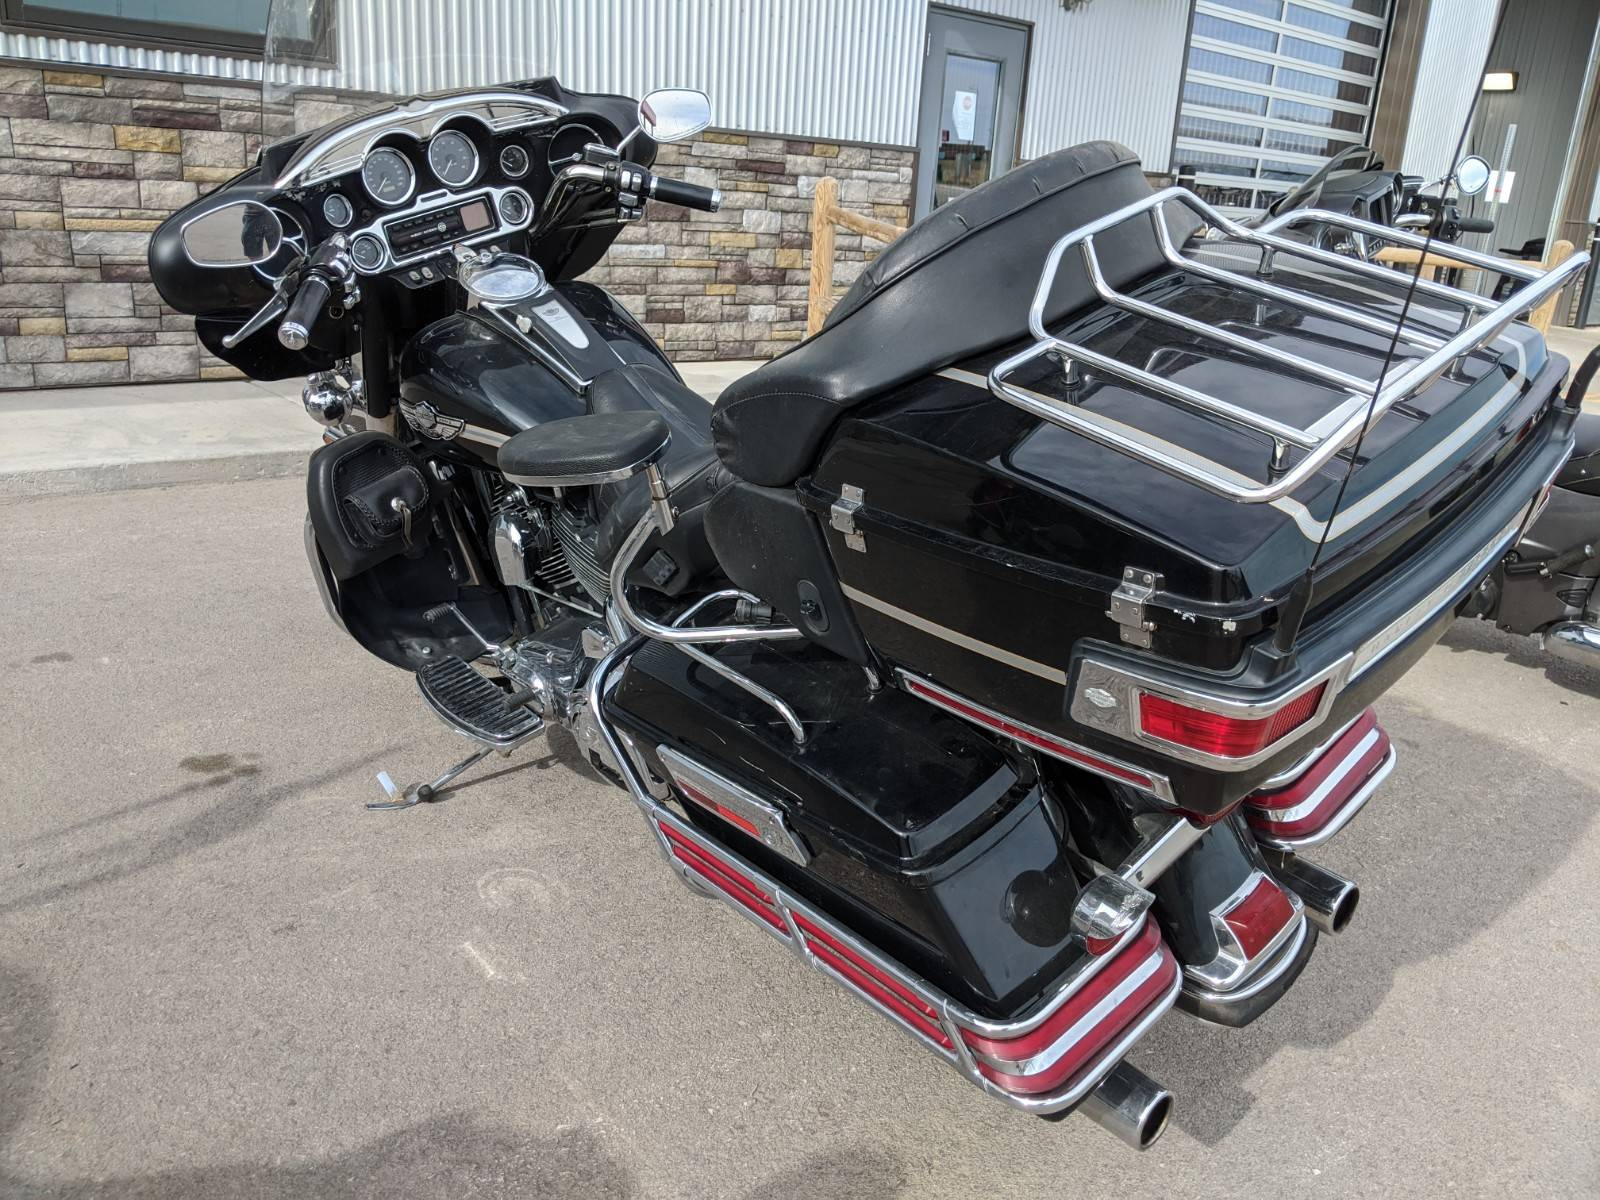 2003 Harley-Davidson FLHTCUI Ultra Classic® Electra Glide® in Rapid City, South Dakota - Photo 6